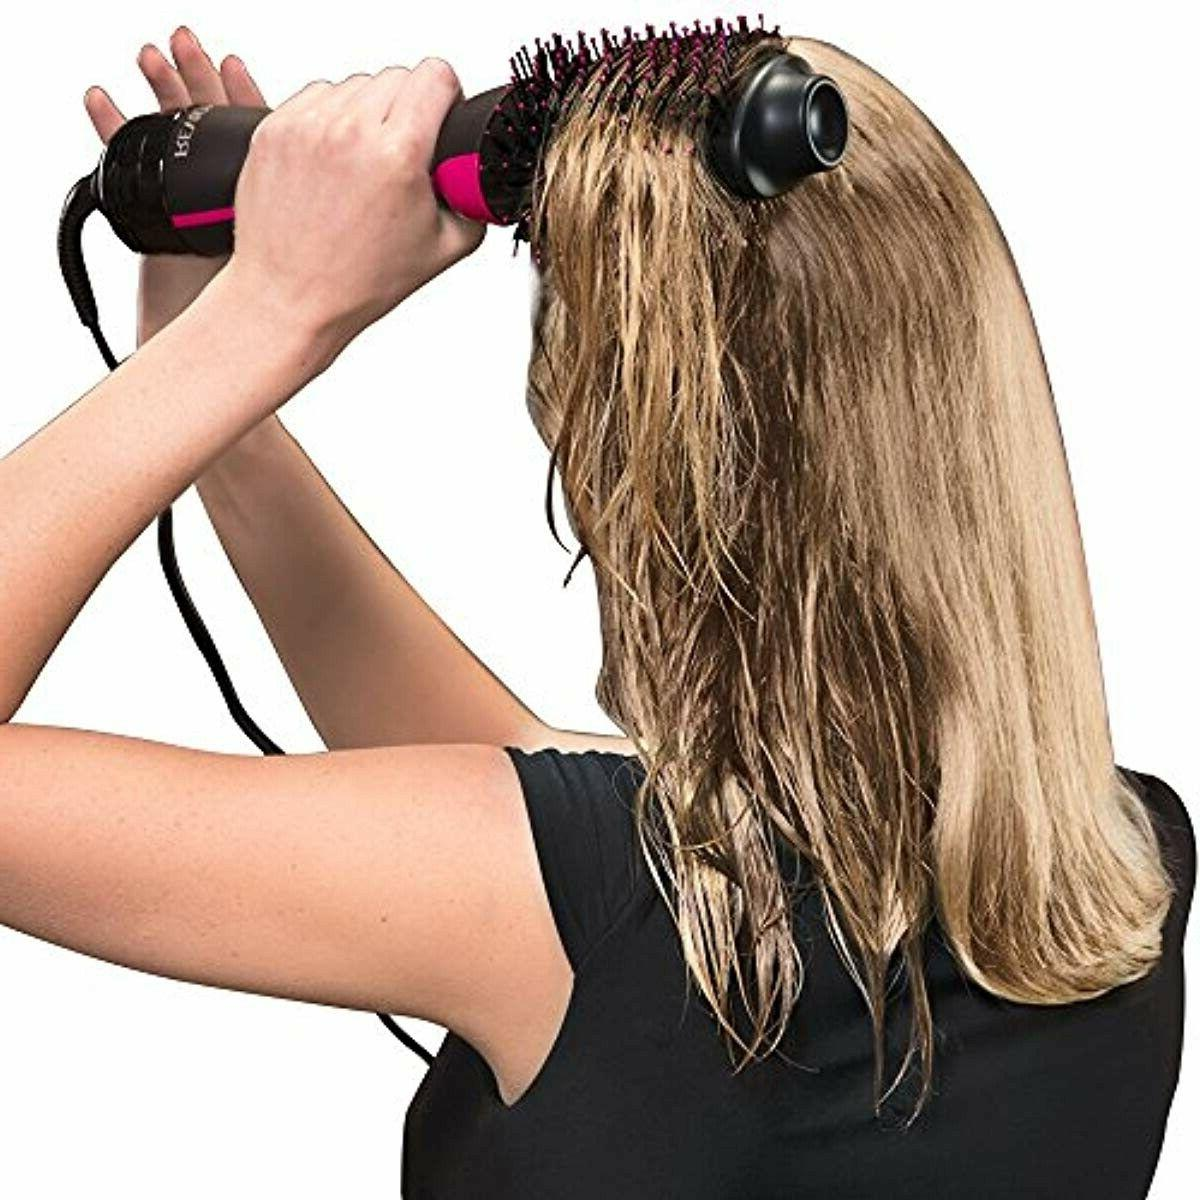 Blow Dryer Brush Hair Volumizing Air Drying Styler Har